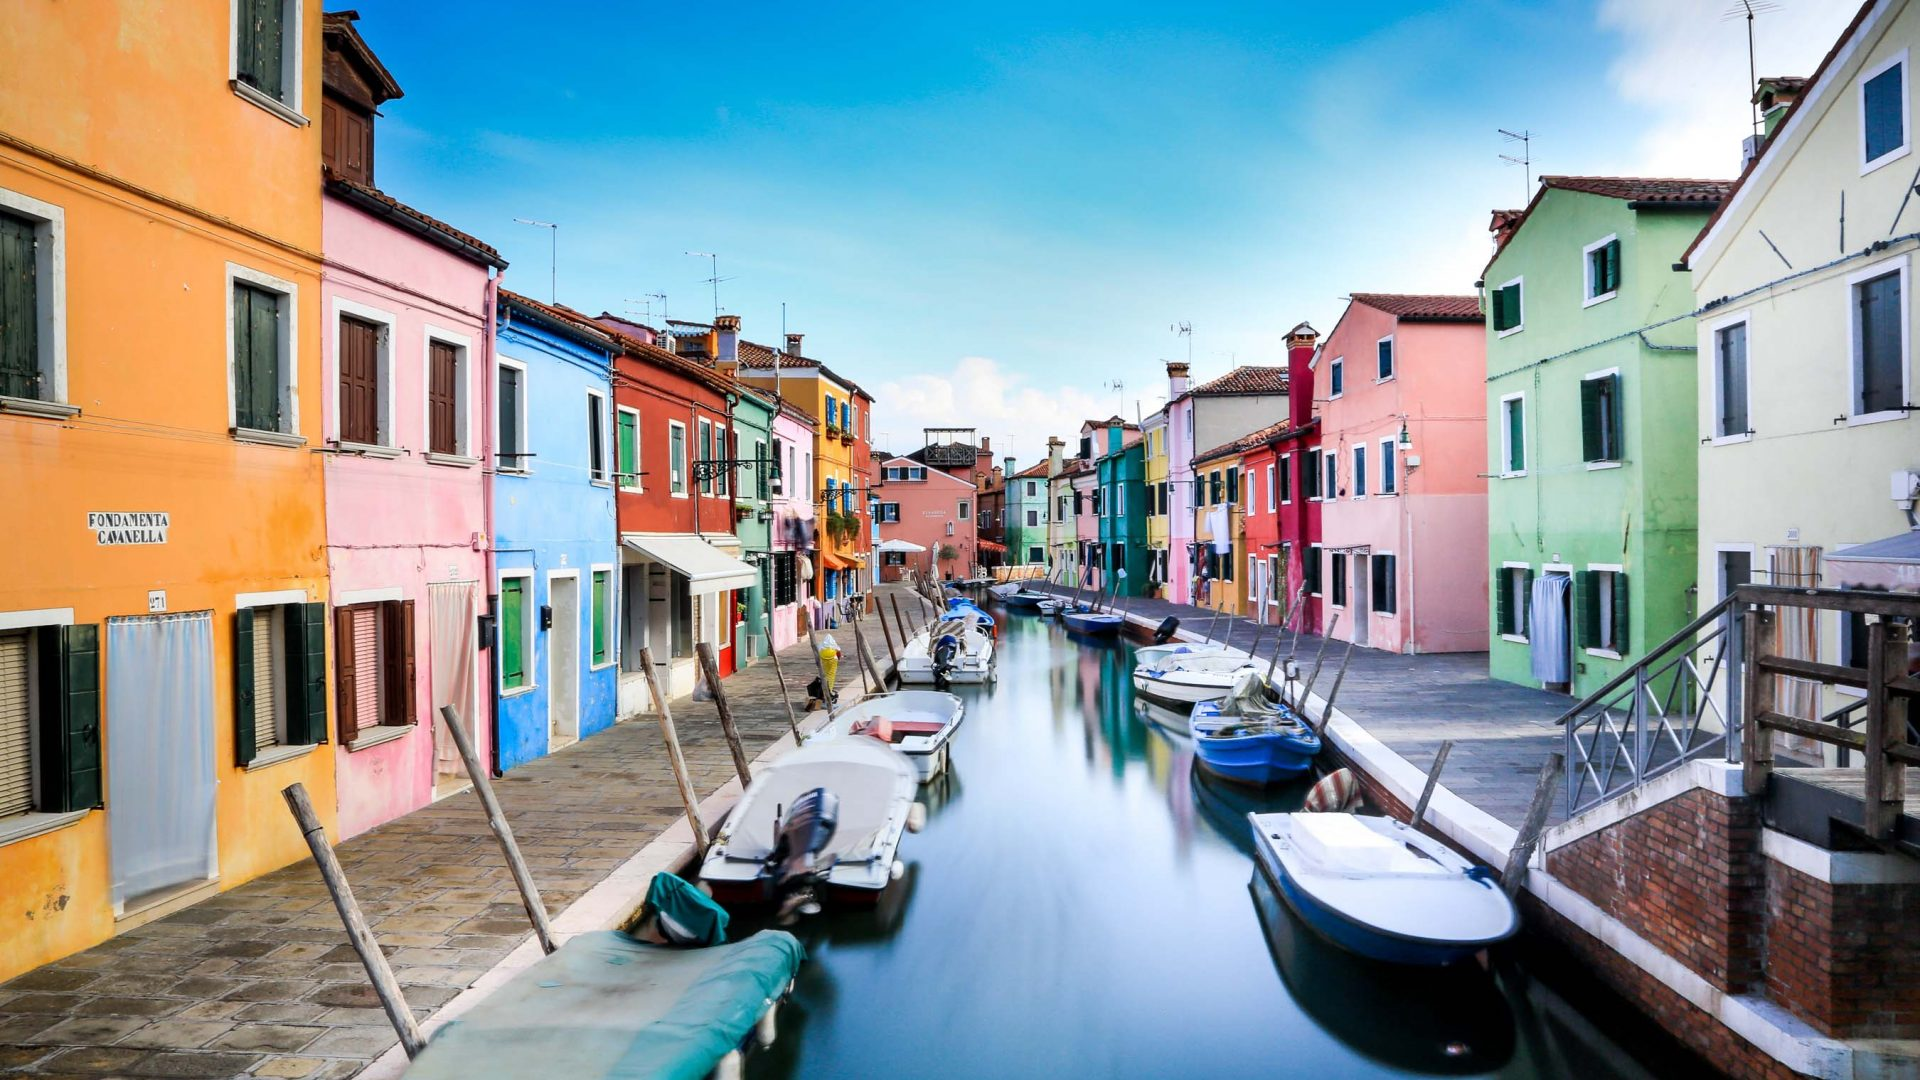 Colorful houses and boats in a canal in Burano.